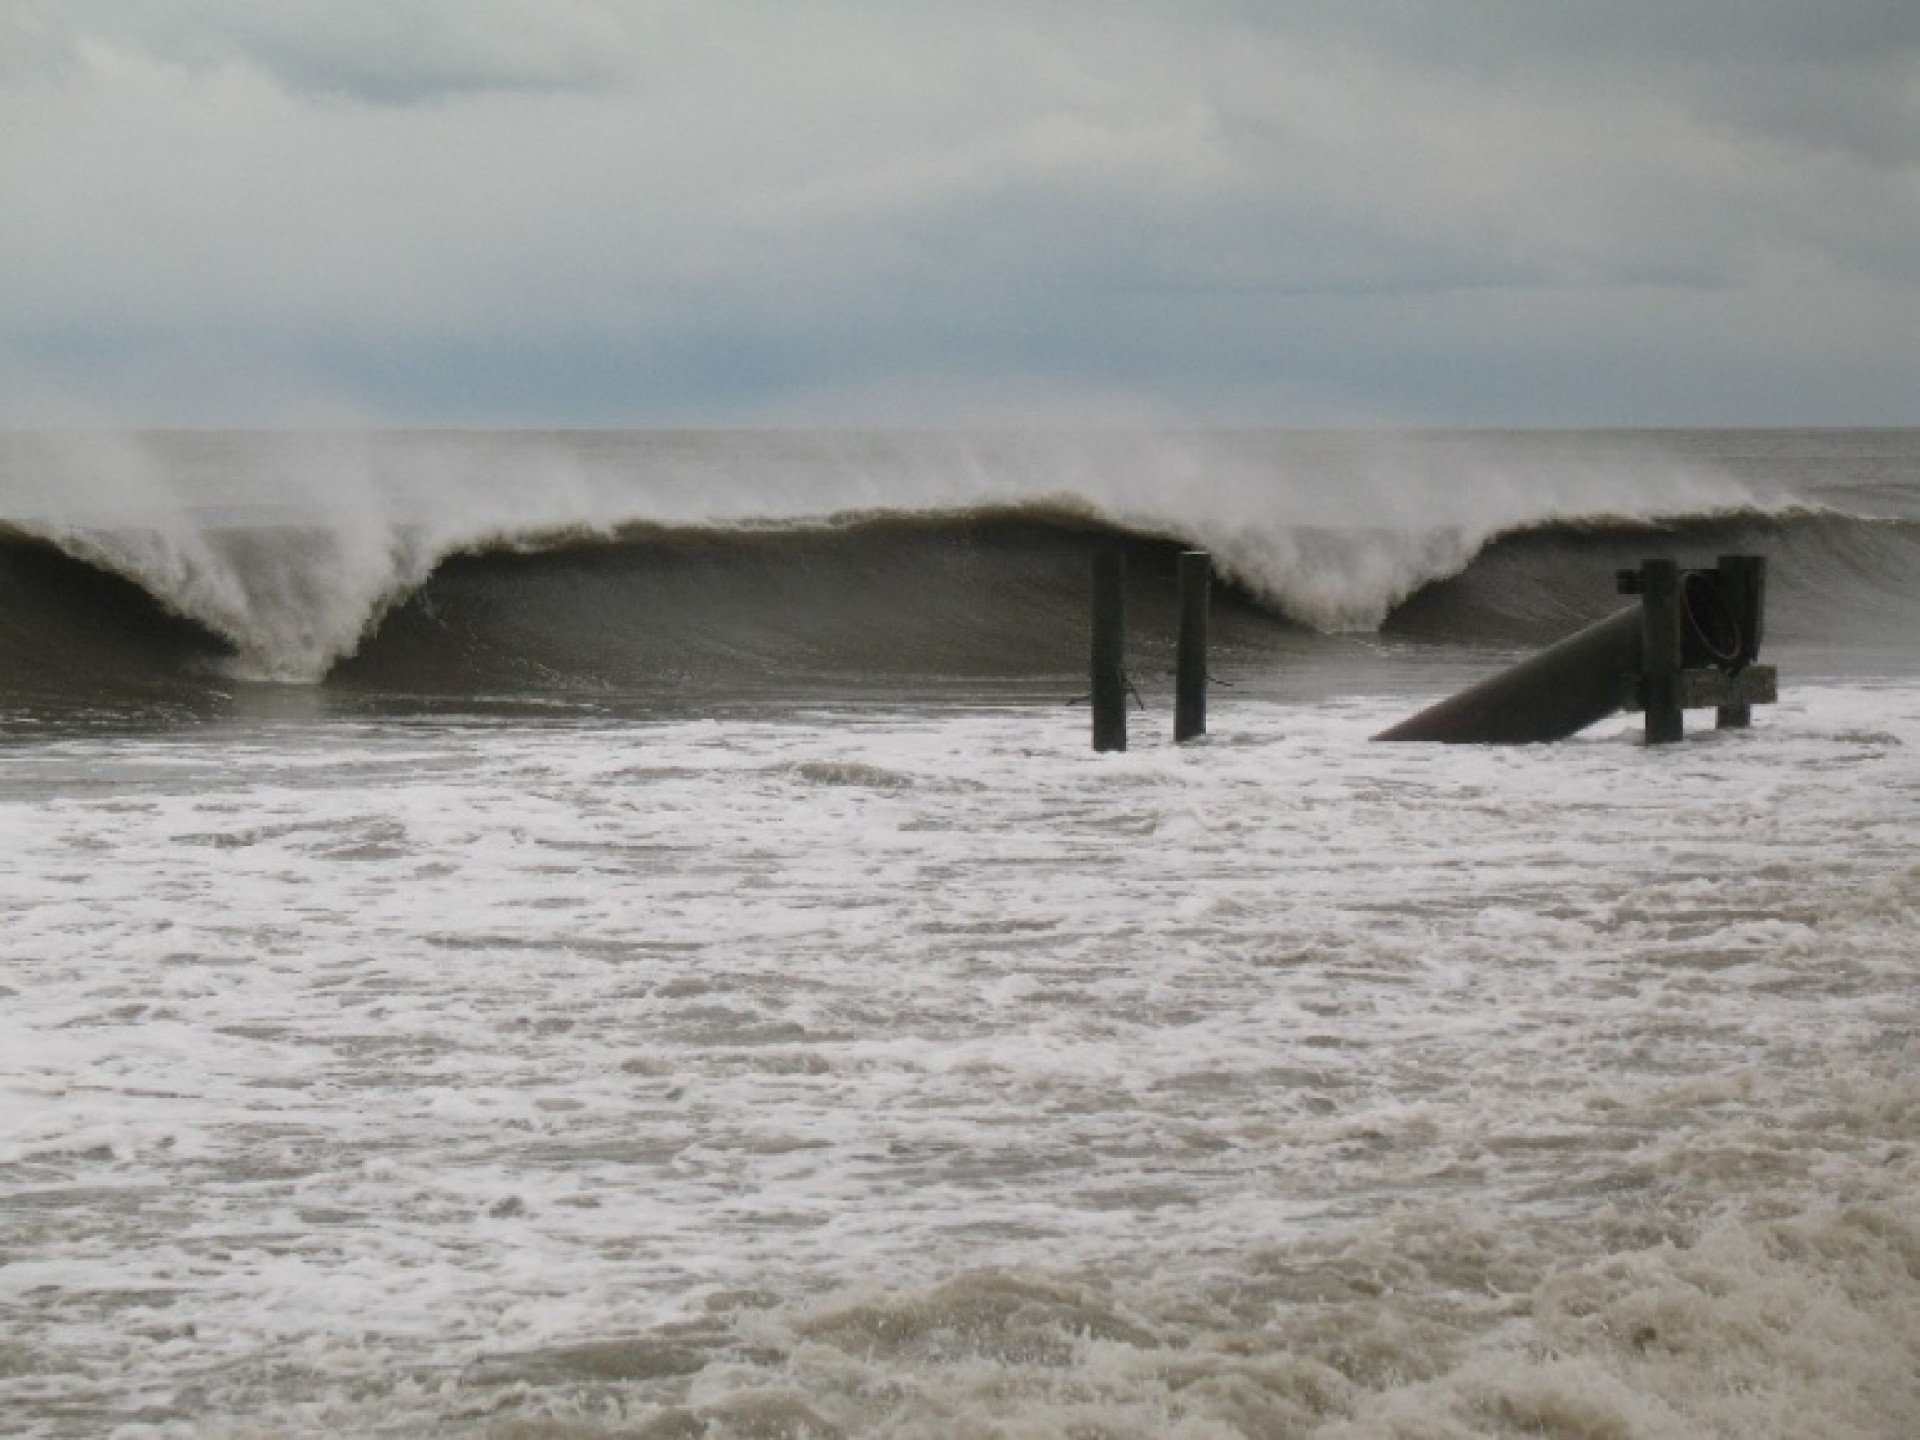 Aaron Silverthorn Maines's photo of Ocean City, NJ